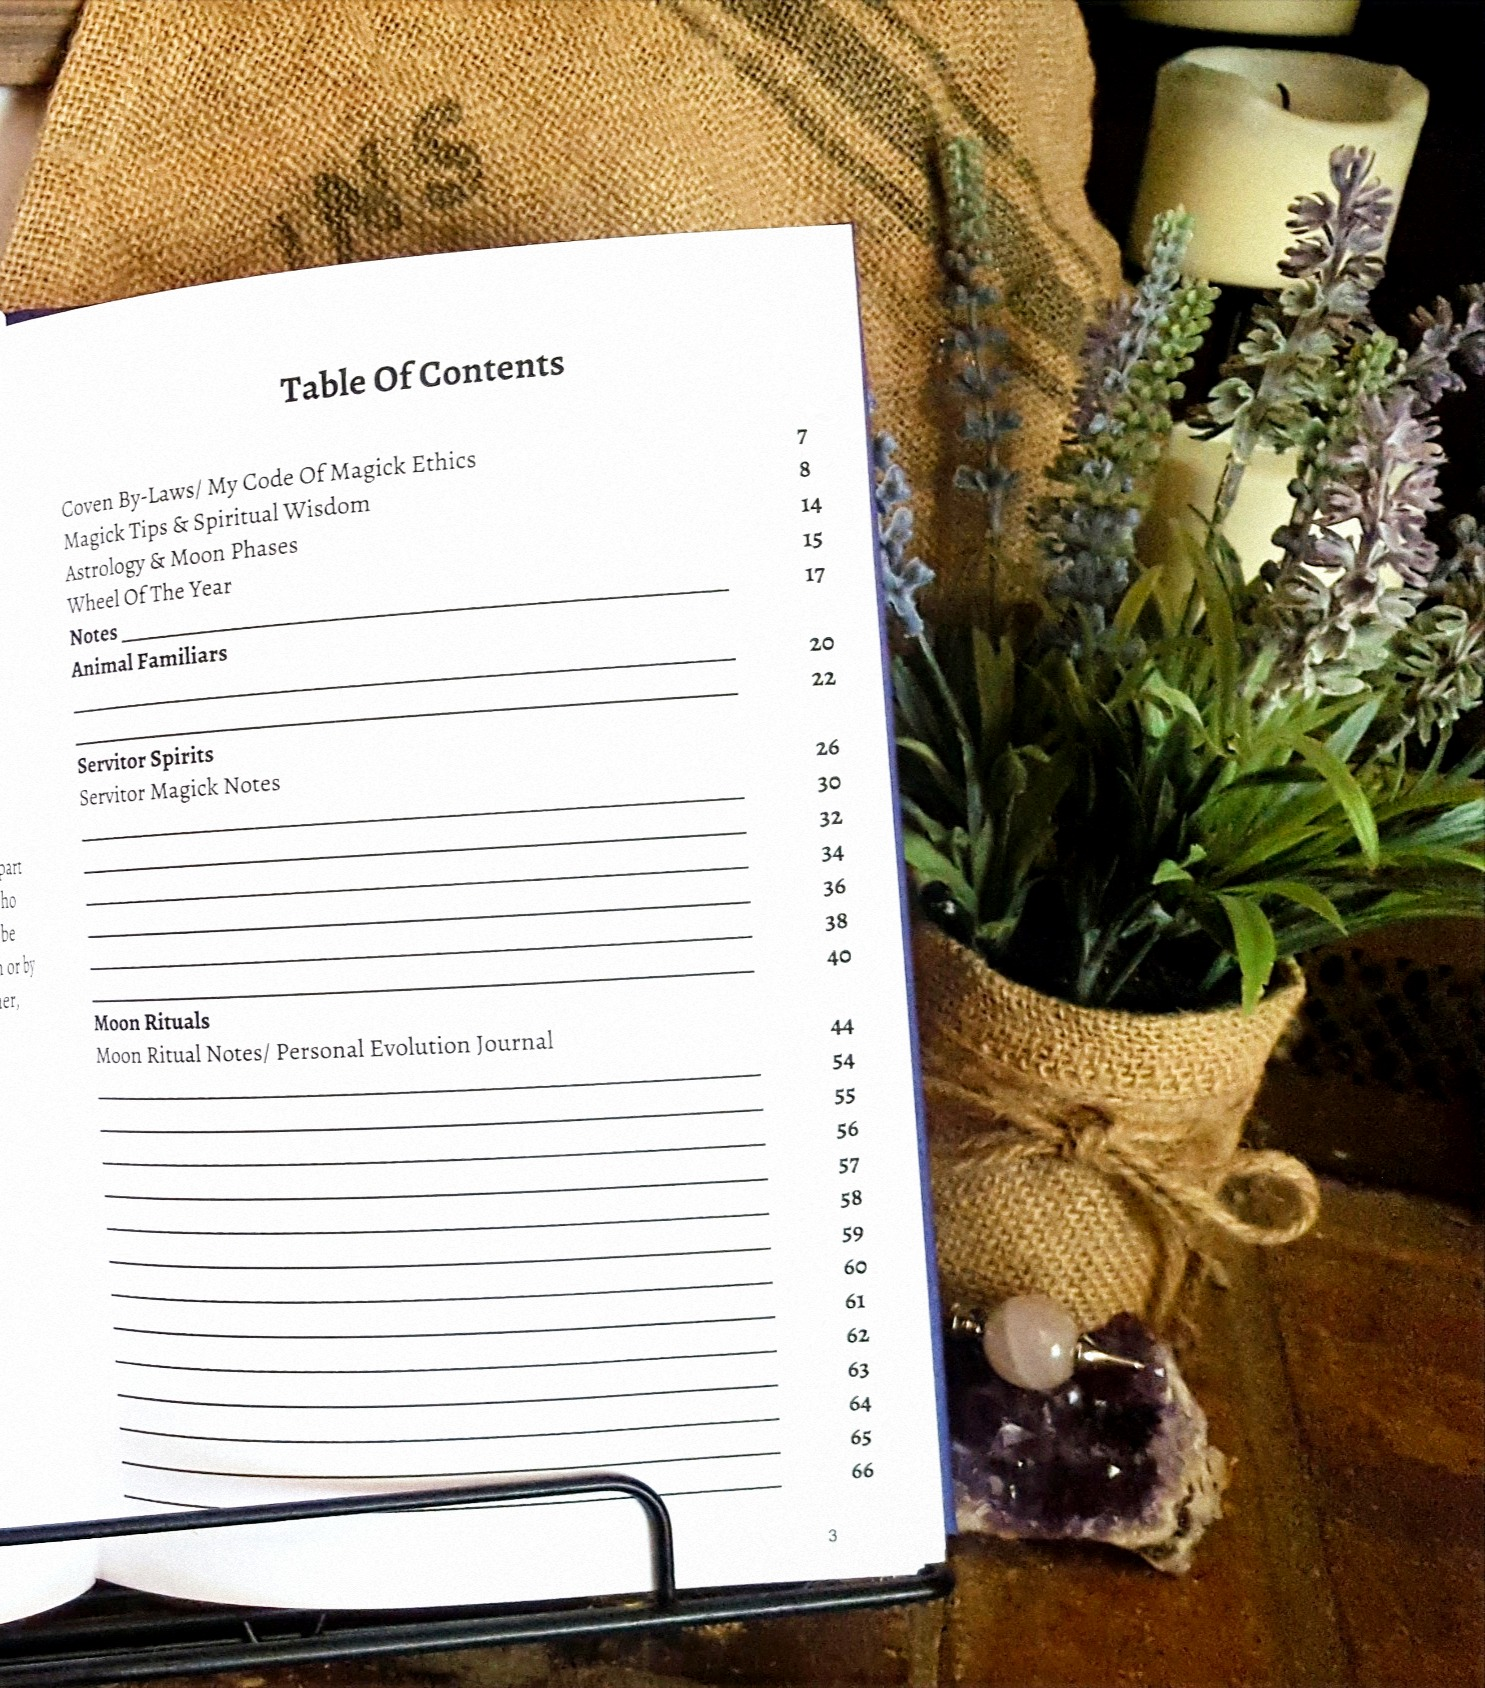 Fill in the table of contents with your own spells and rituals